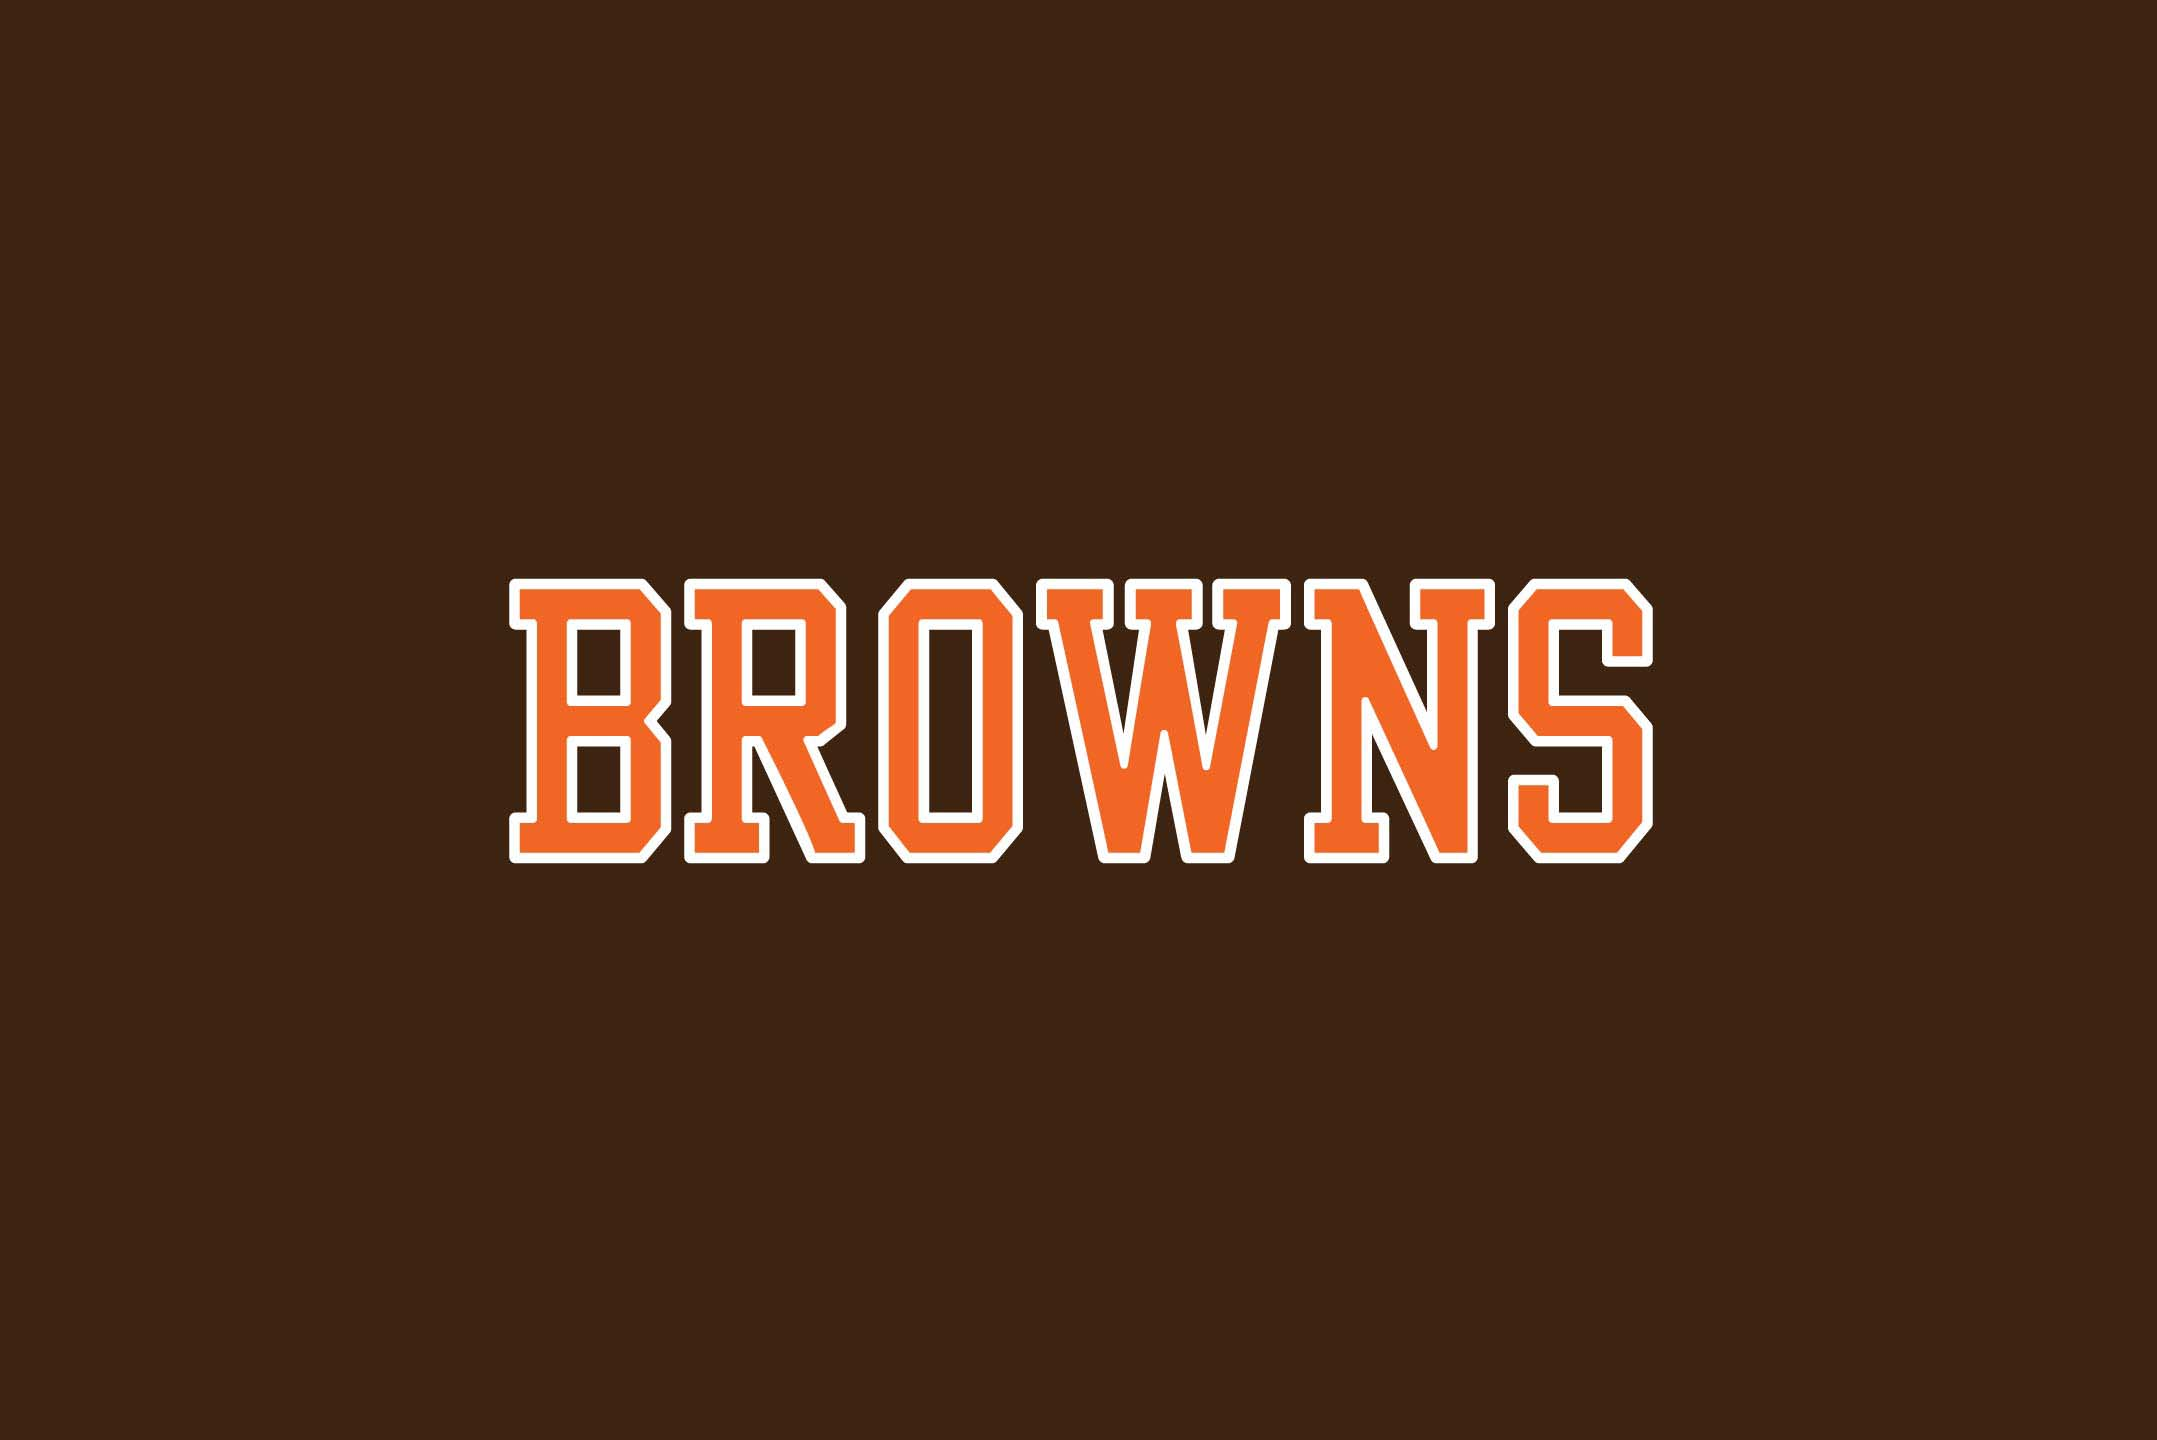 Cleveland Browns Desktop Wallpaper